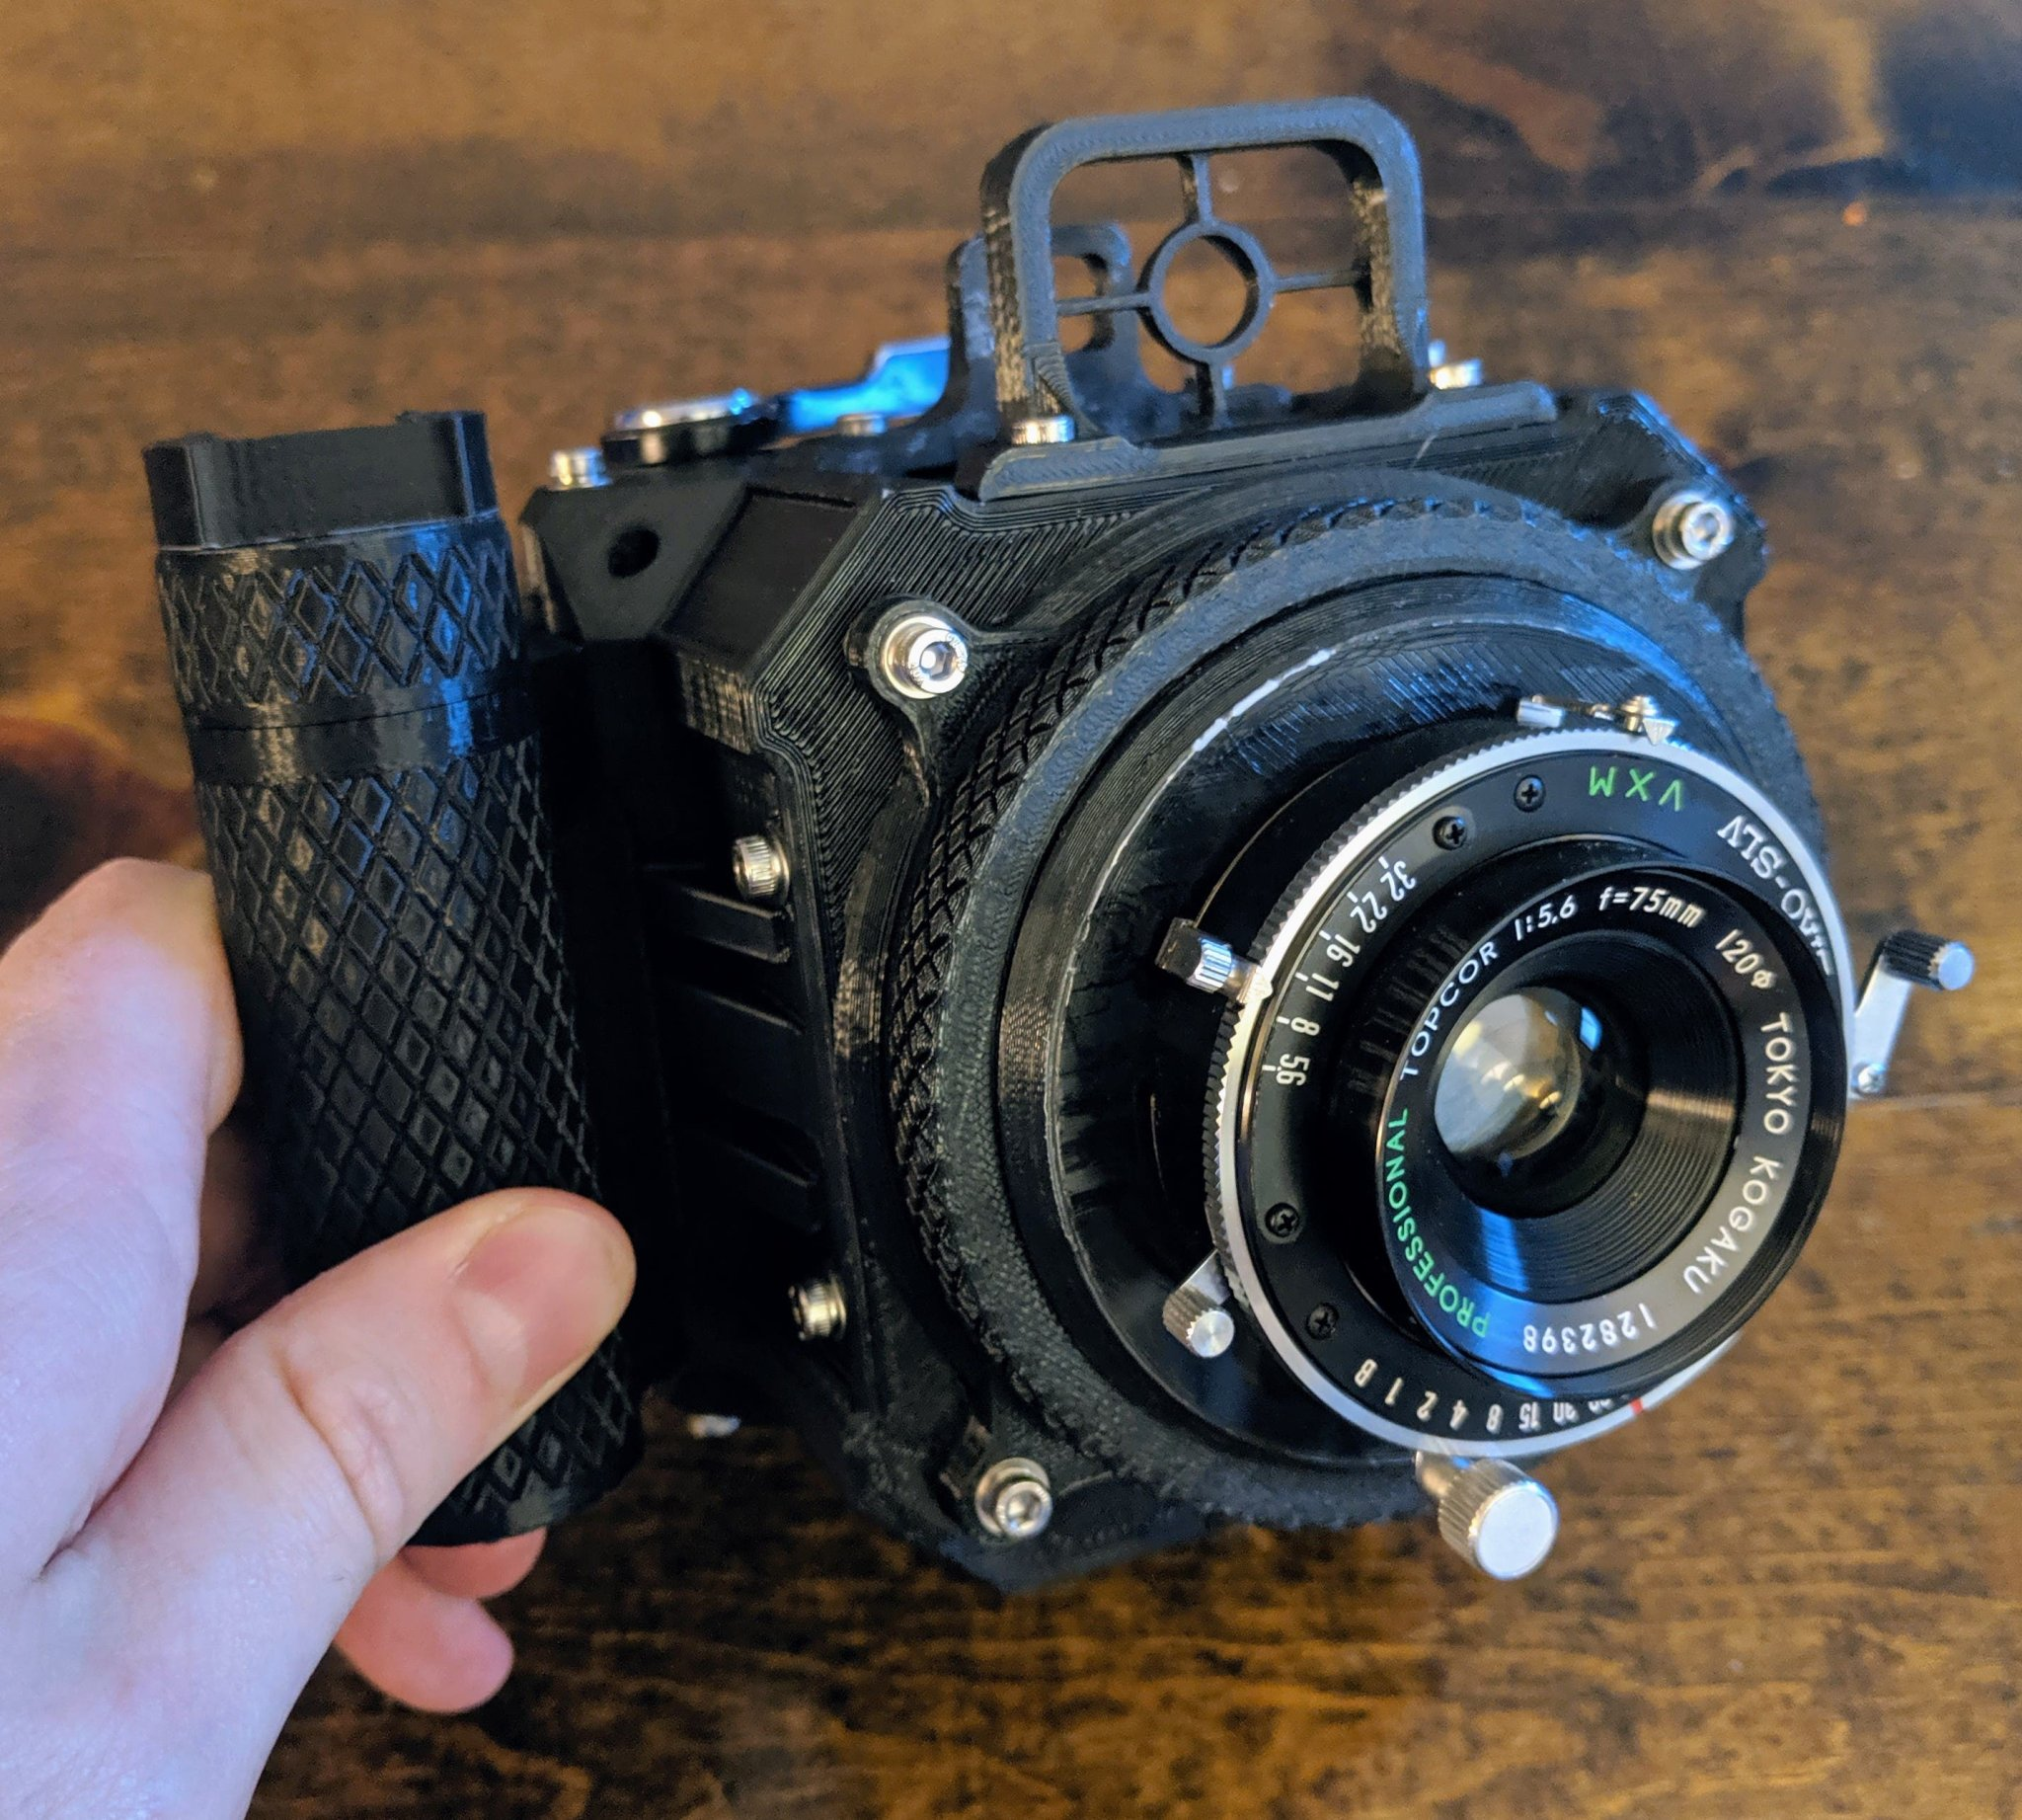 This Modified Camera Is a Cool DIY Project for Film Photographers